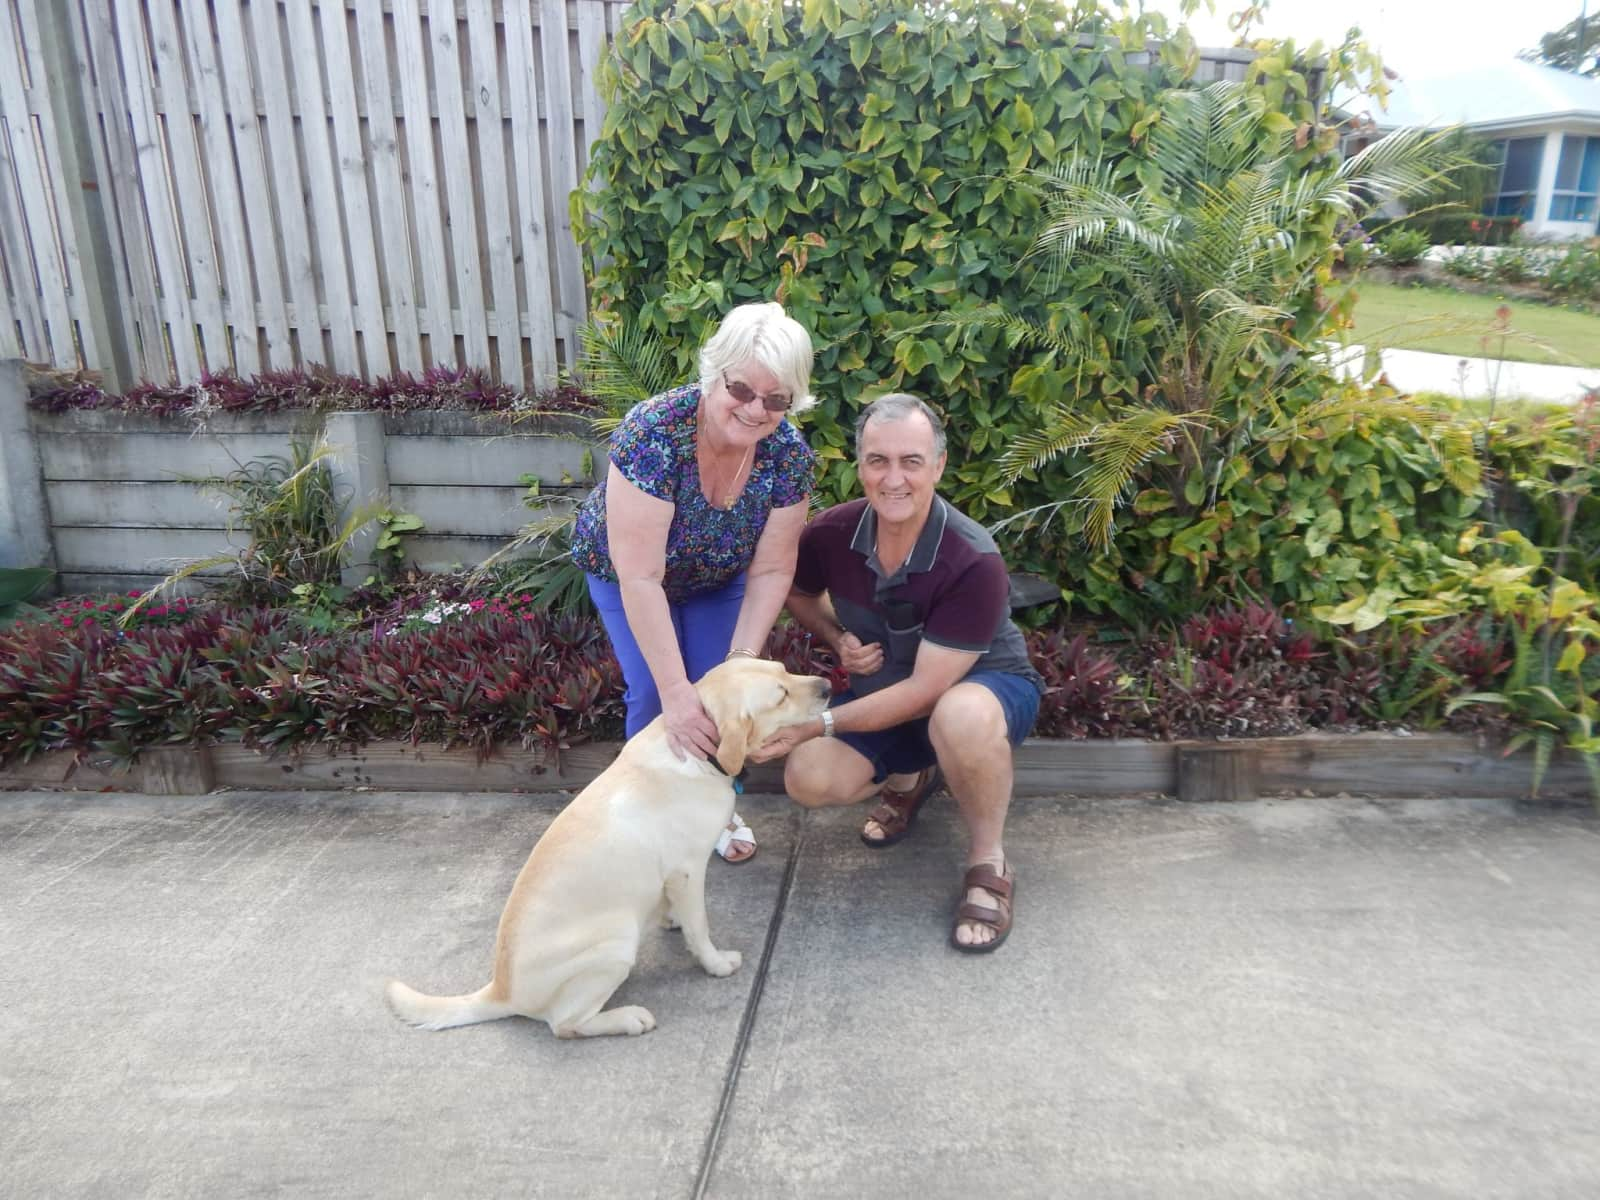 Graham & Marilyn from Bli Bli, Queensland, Australia